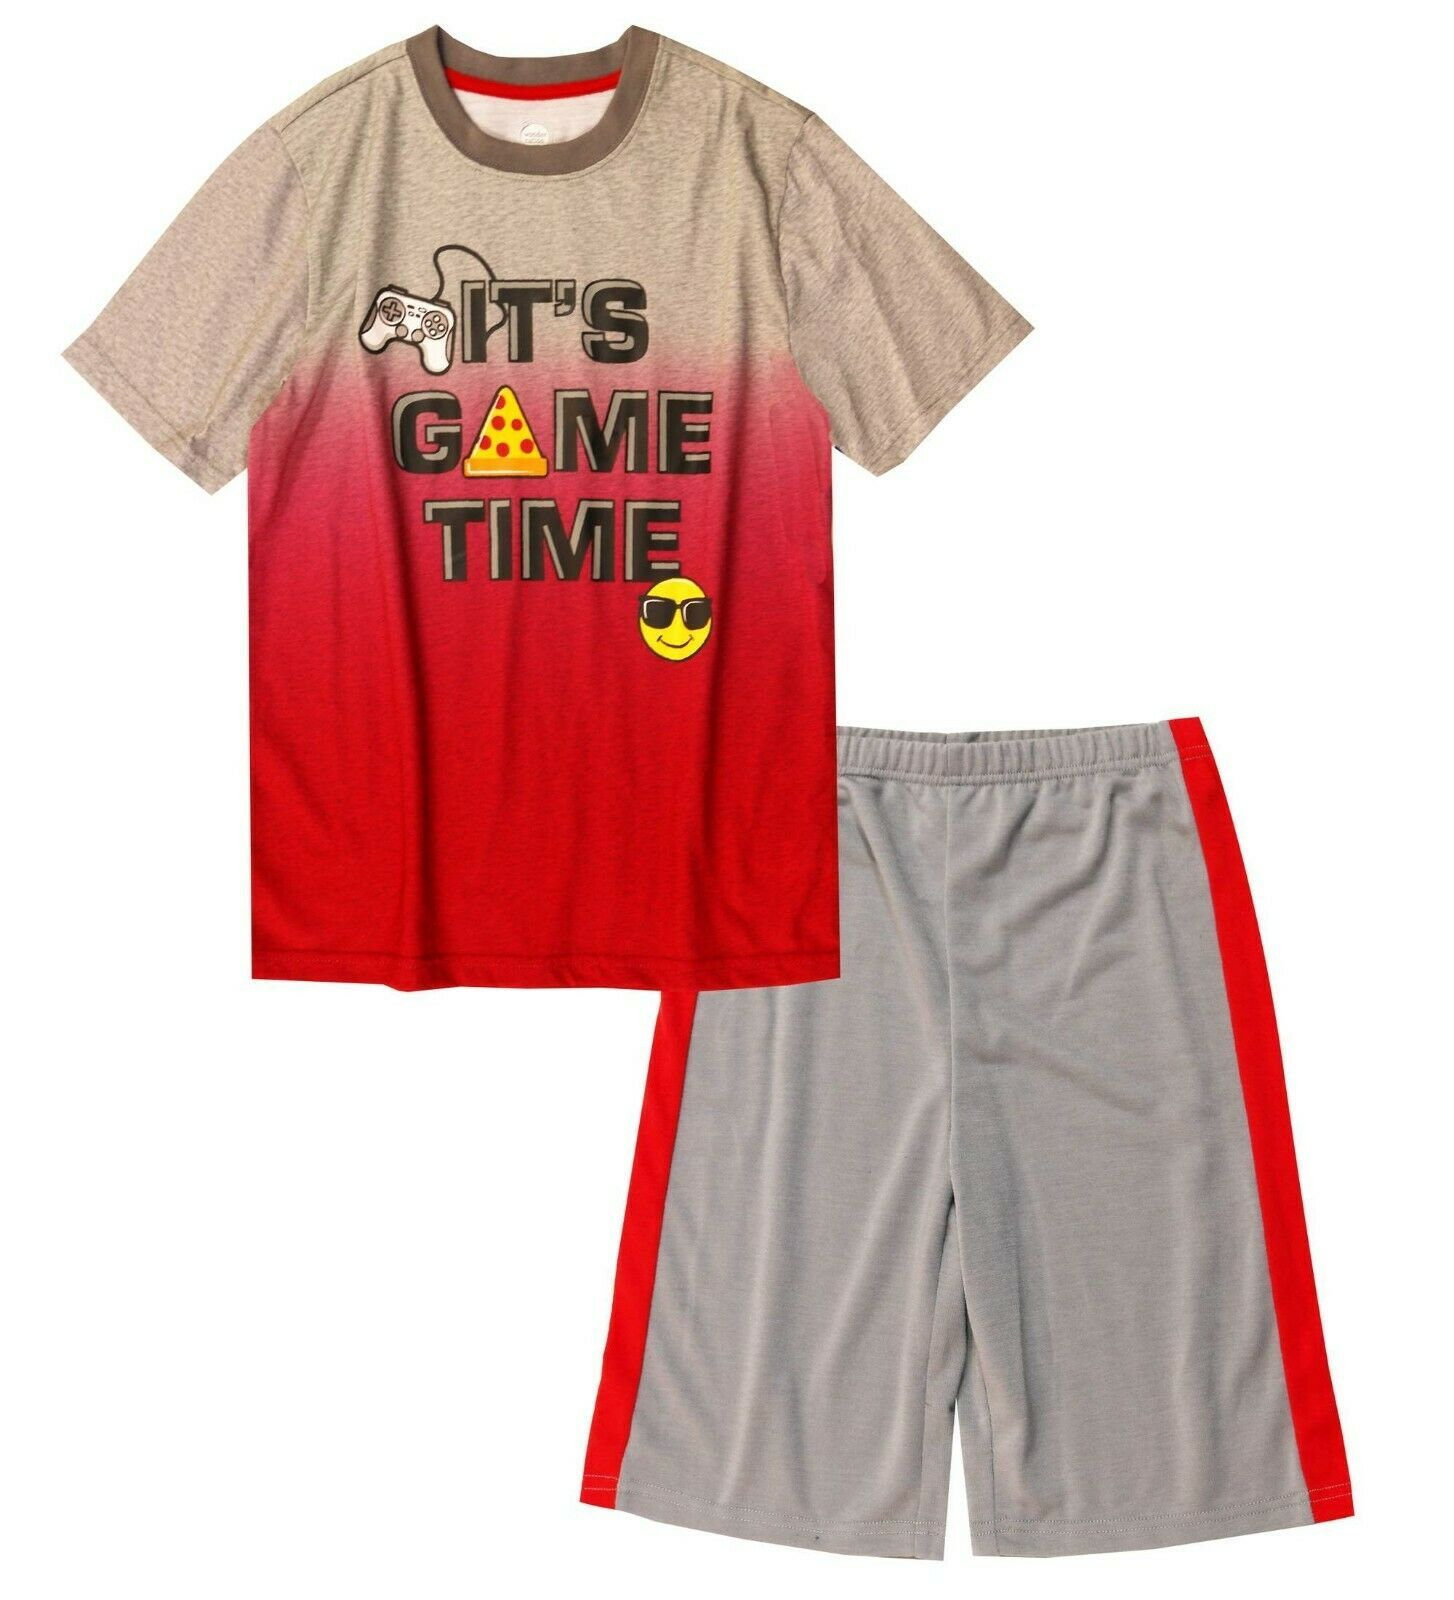 Primary image for Wonder Nation Boys Sleepwear Shirt & Shorts Small (6-7) It's Game Time Gray